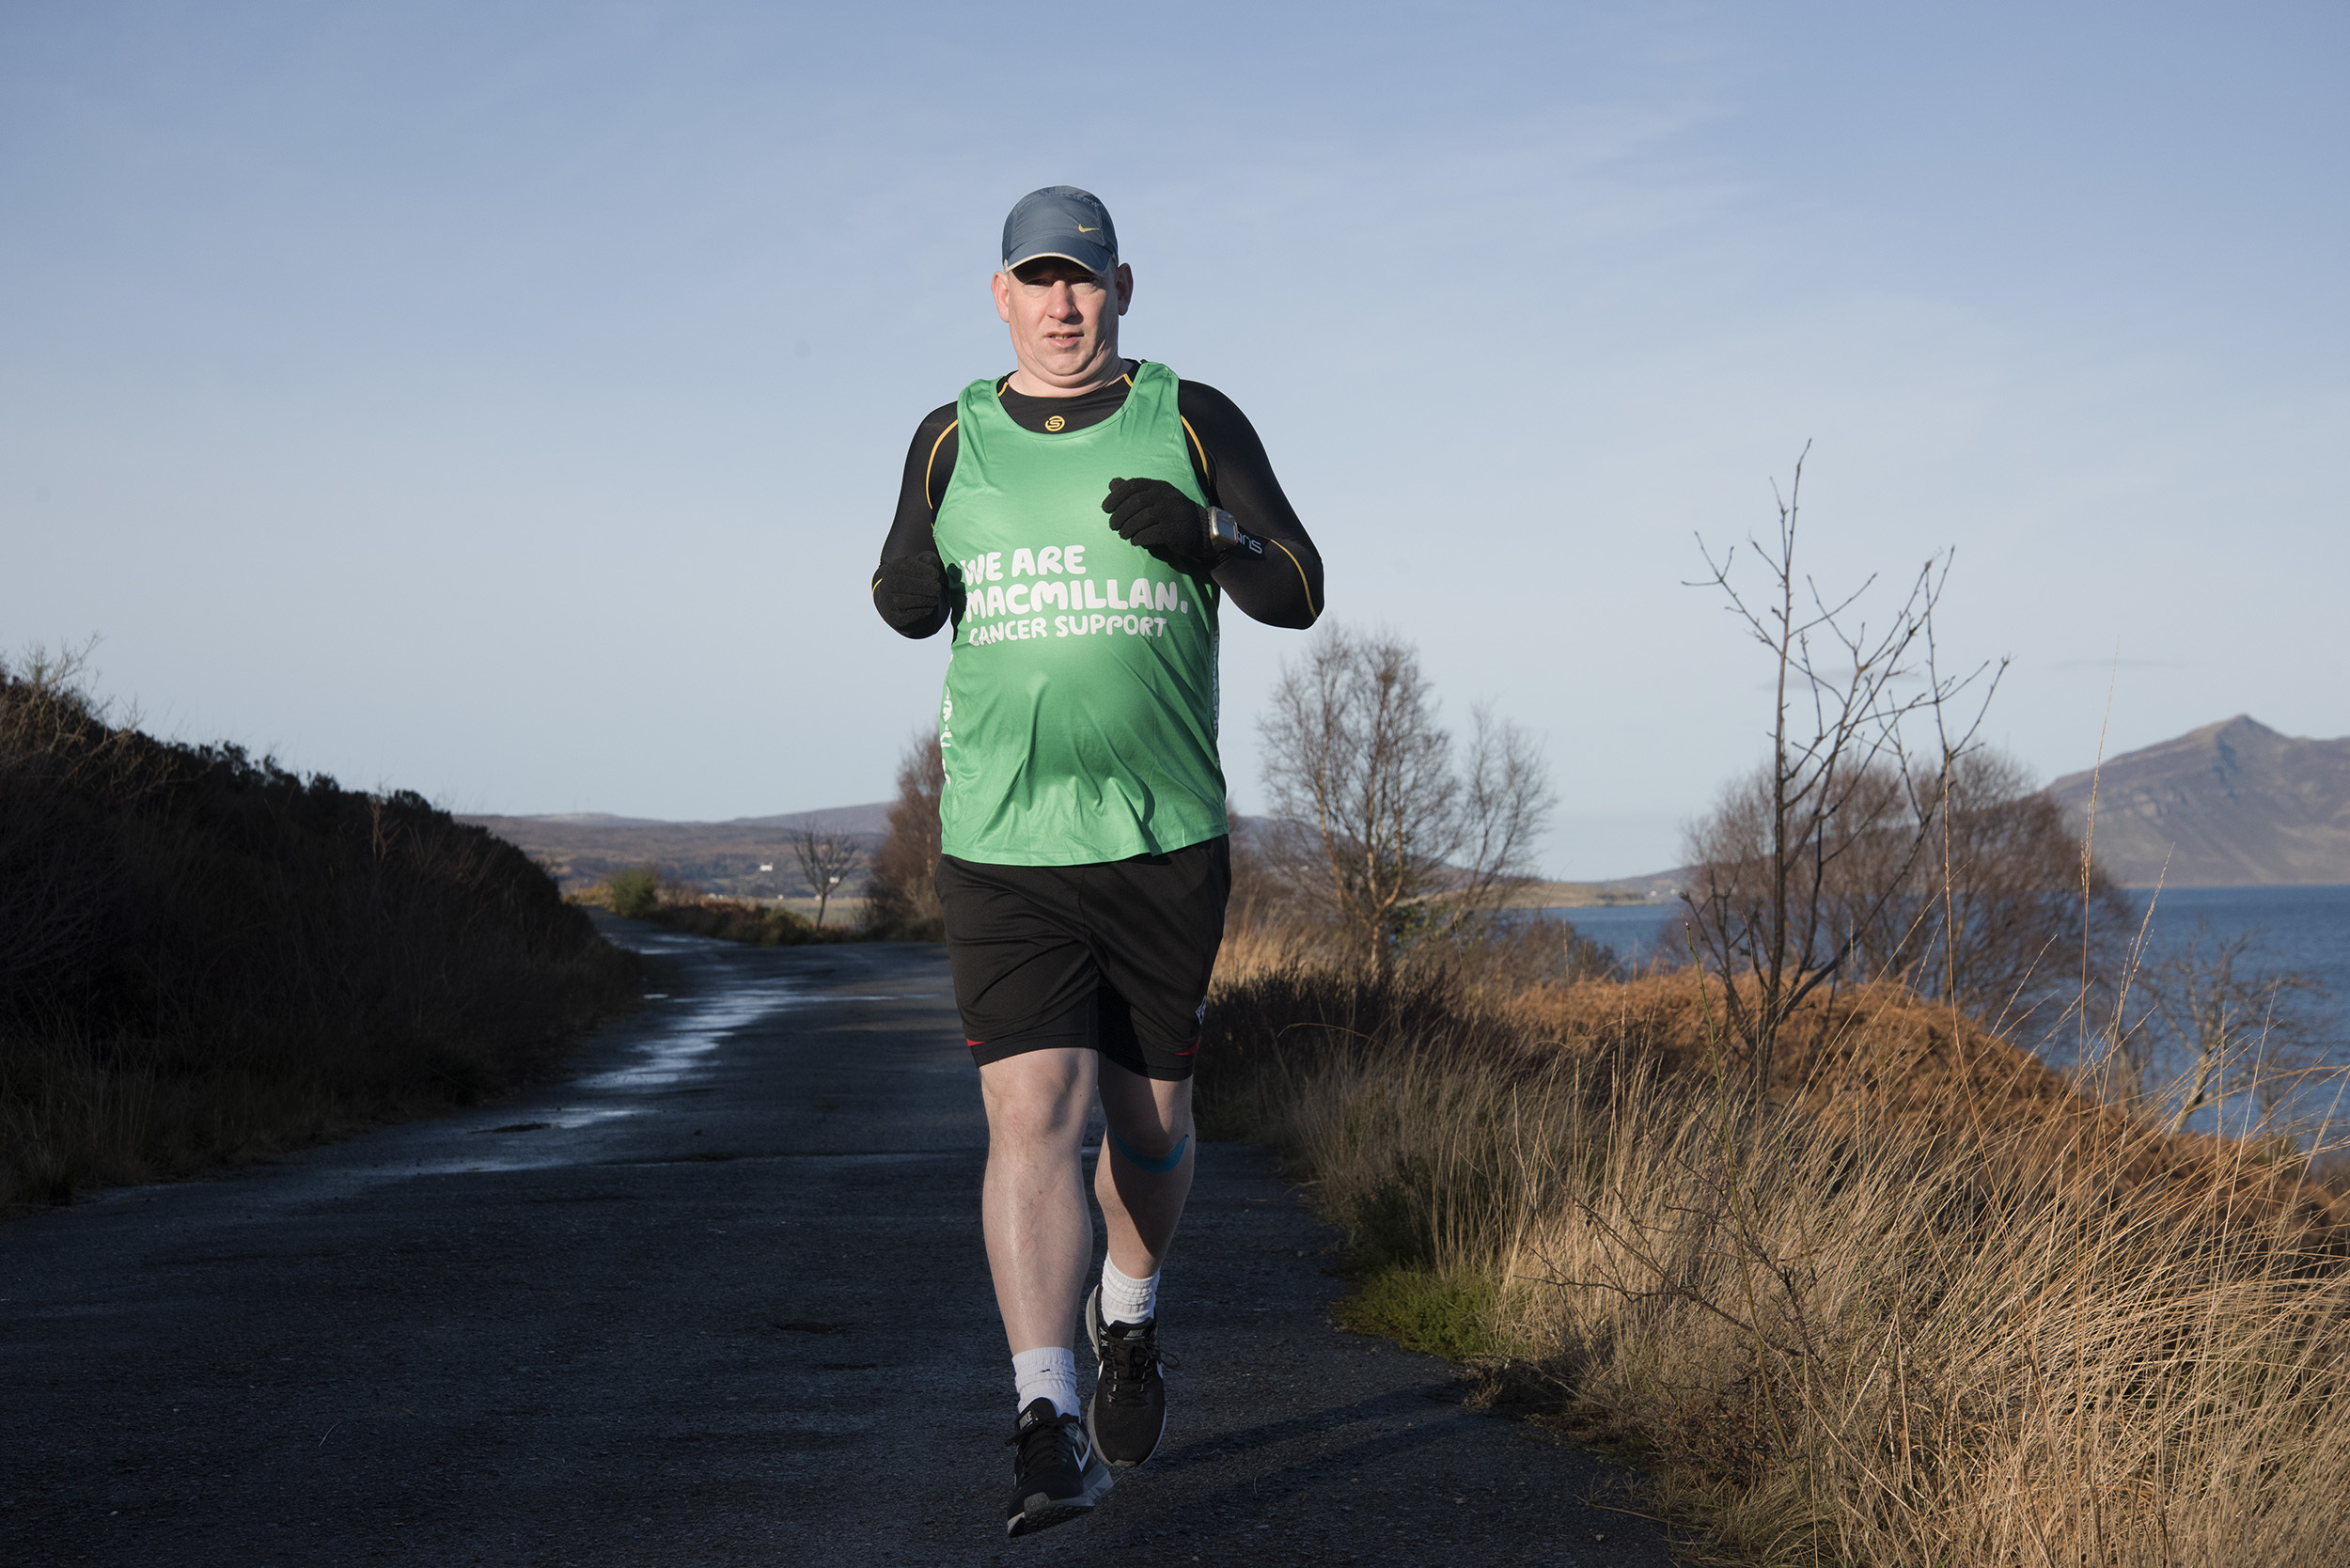 Alistair Macpherson will run across ten islands non-stop over a 48-hour period (Picture: Hugh Campbell)